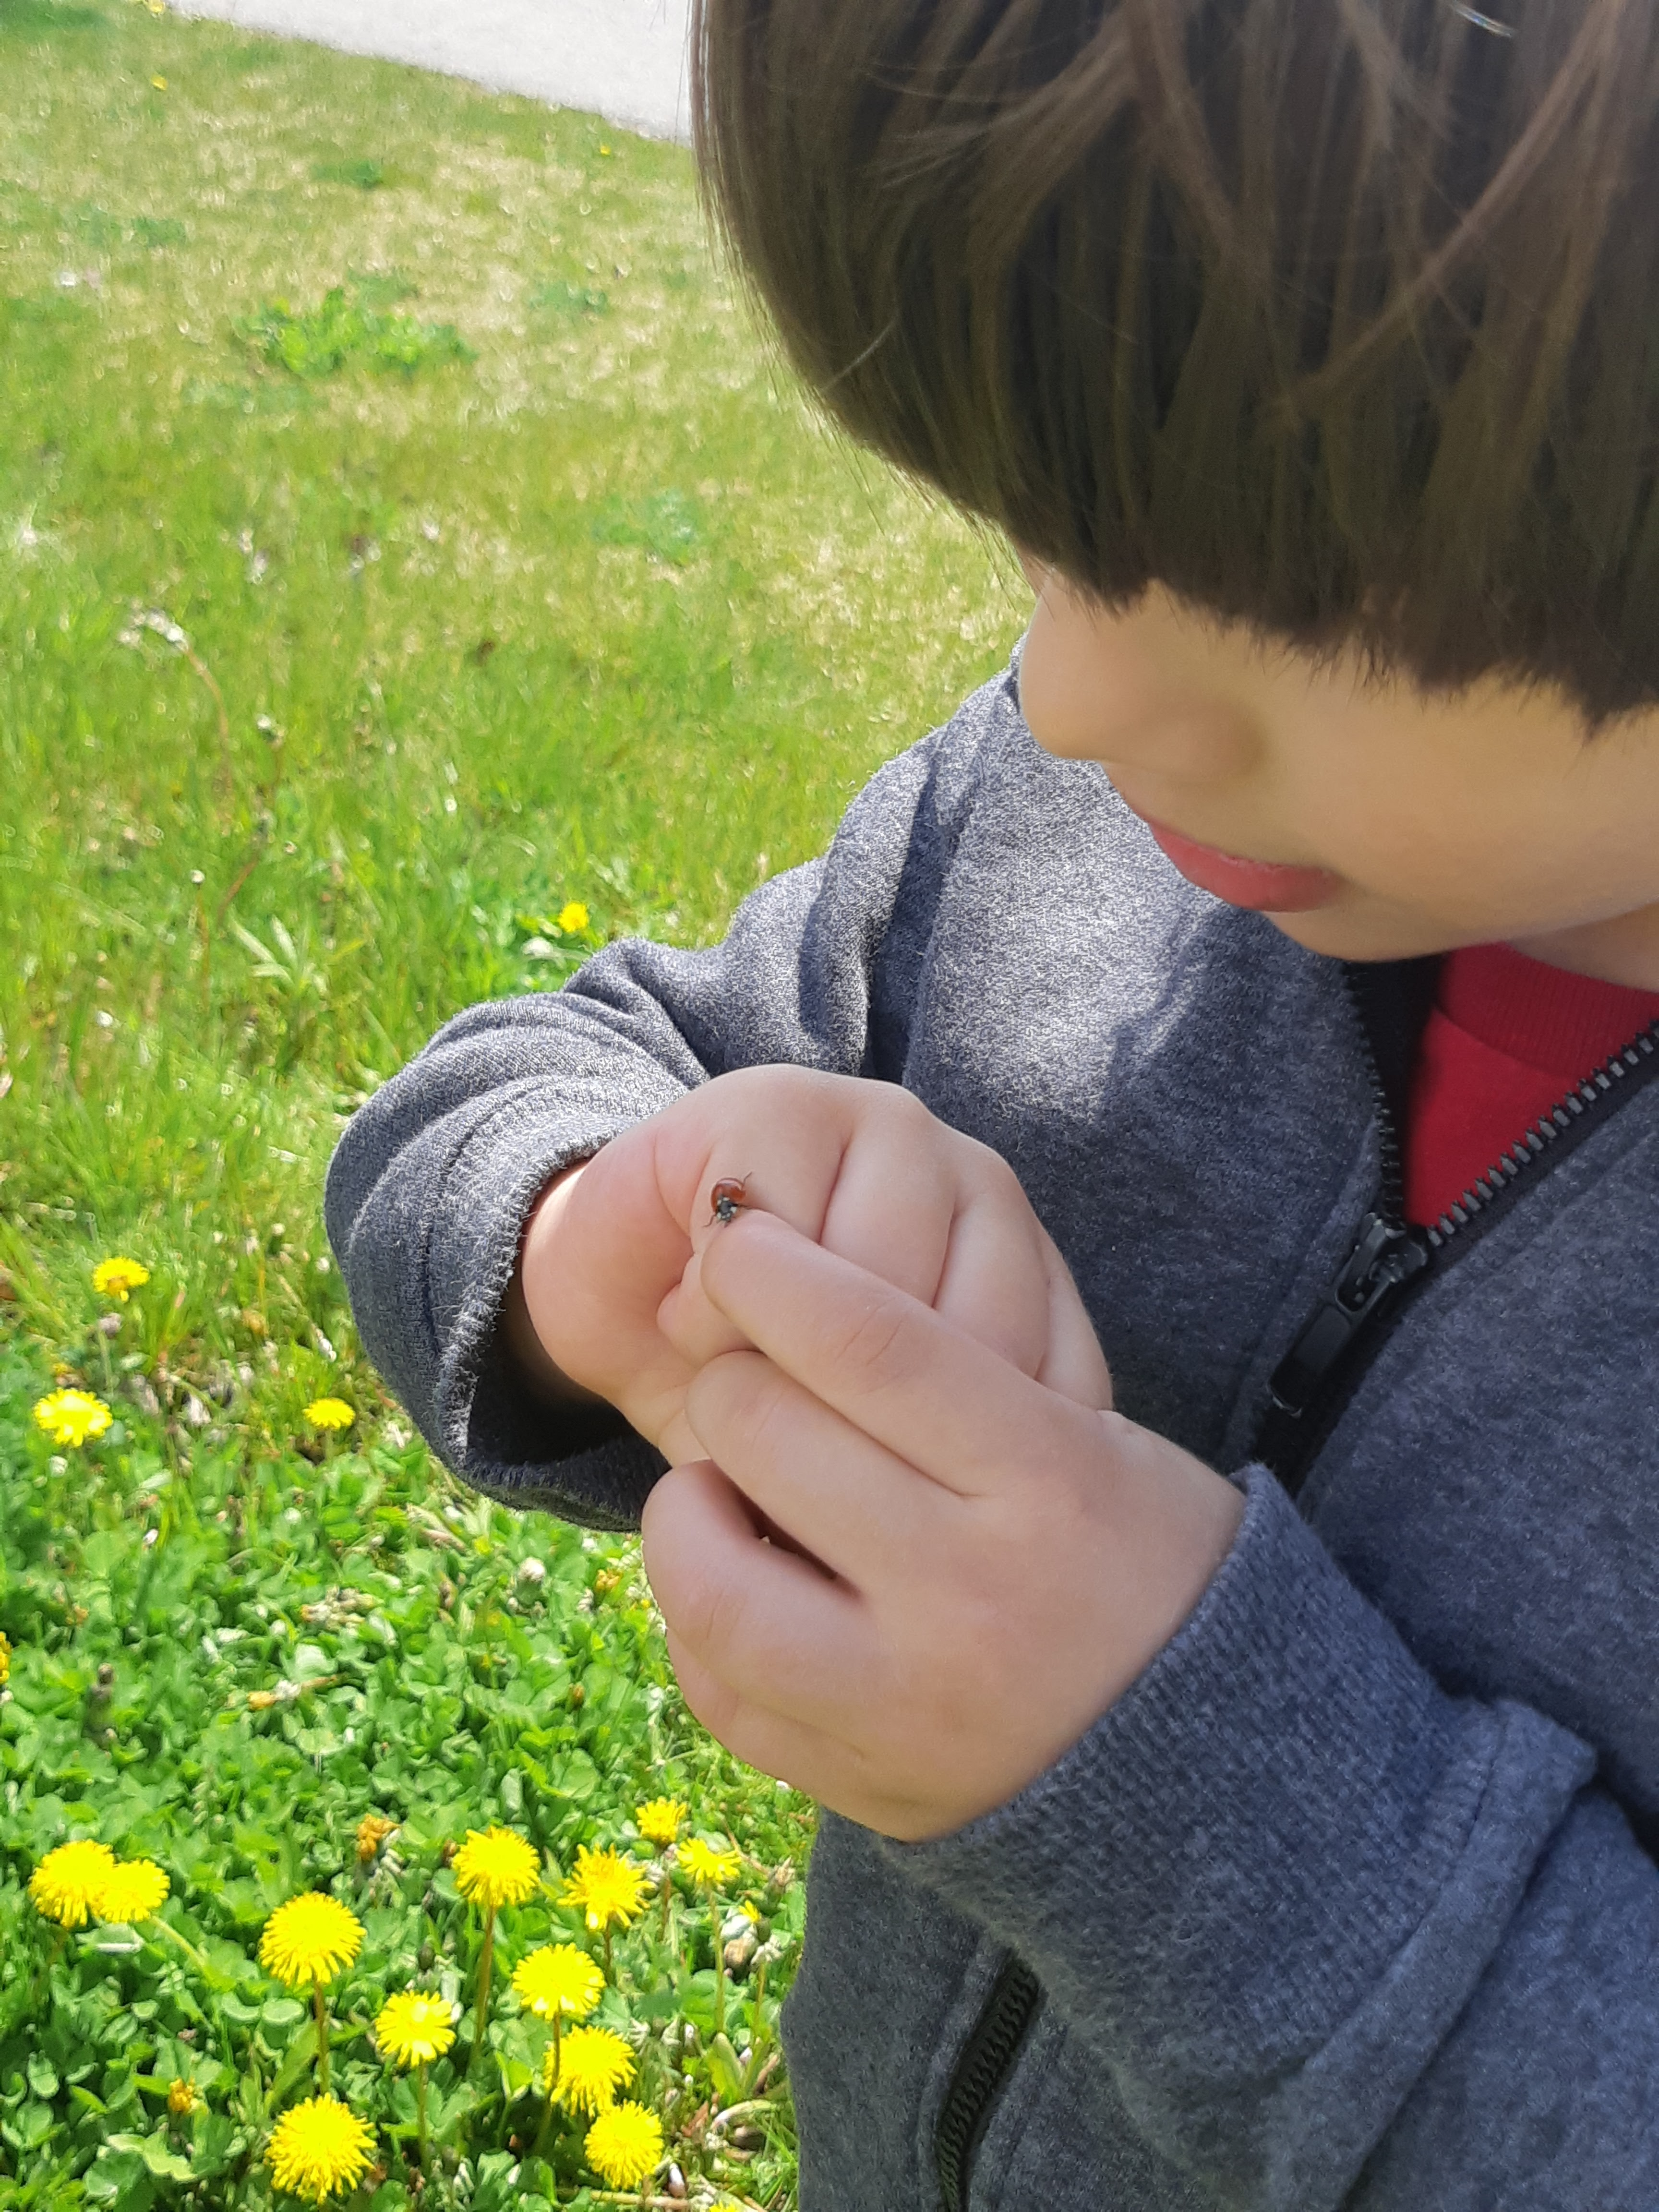 On one of our weekly outings to catch some sun during the lockdown in a park that would usually be full, my younger brother managed to get a ladybug to pose on one of his fingers and I decided to take a picture of this moment.